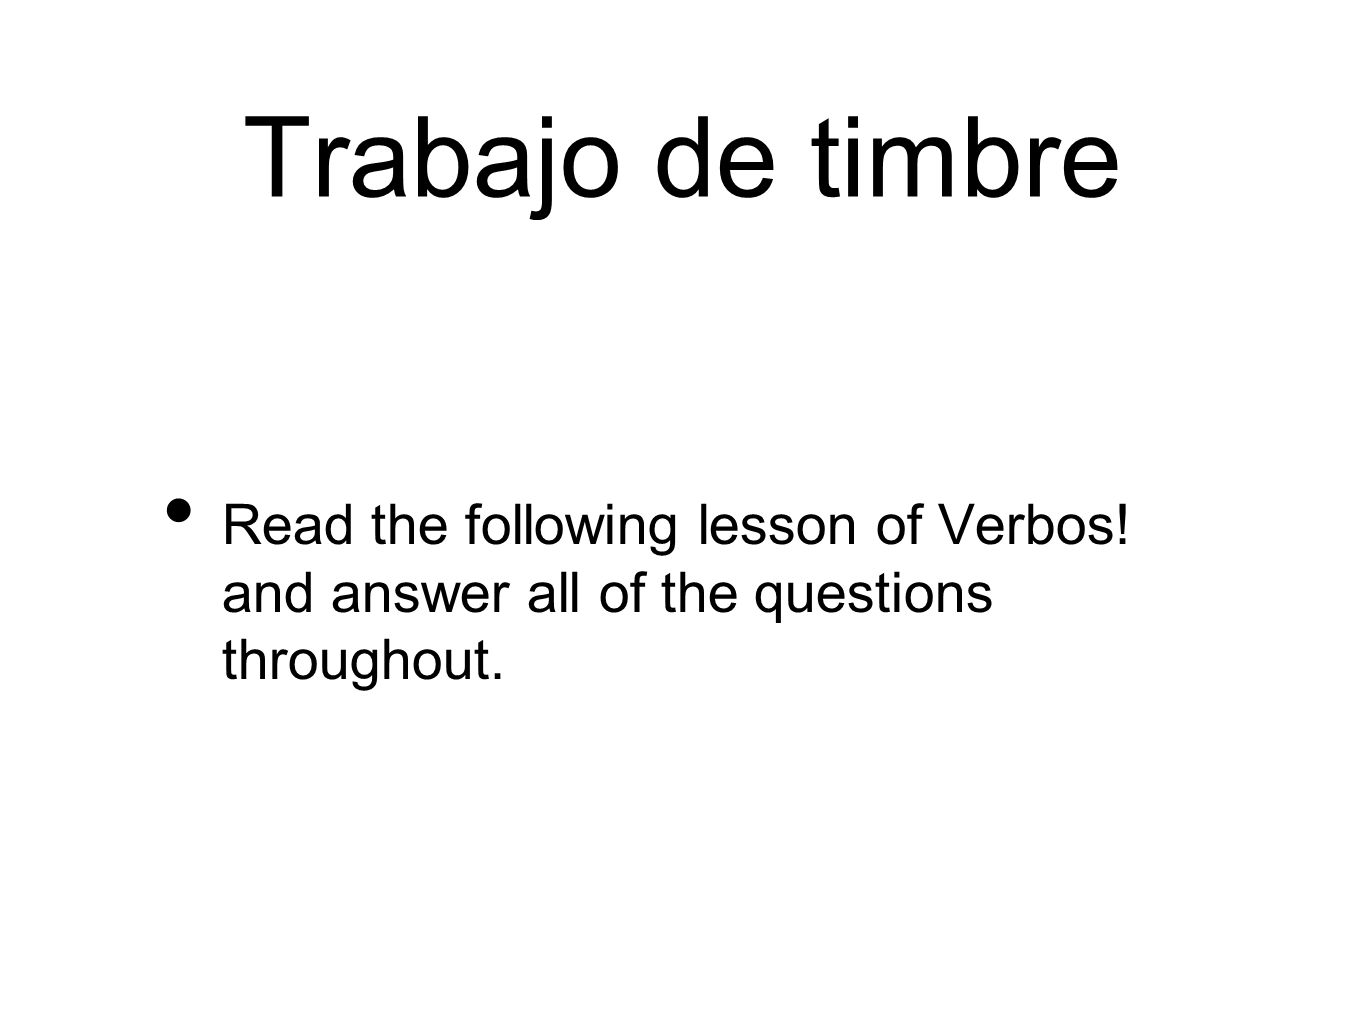 Trabajo de timbre Read the following lesson of Verbos! and answer all of the questions throughout.